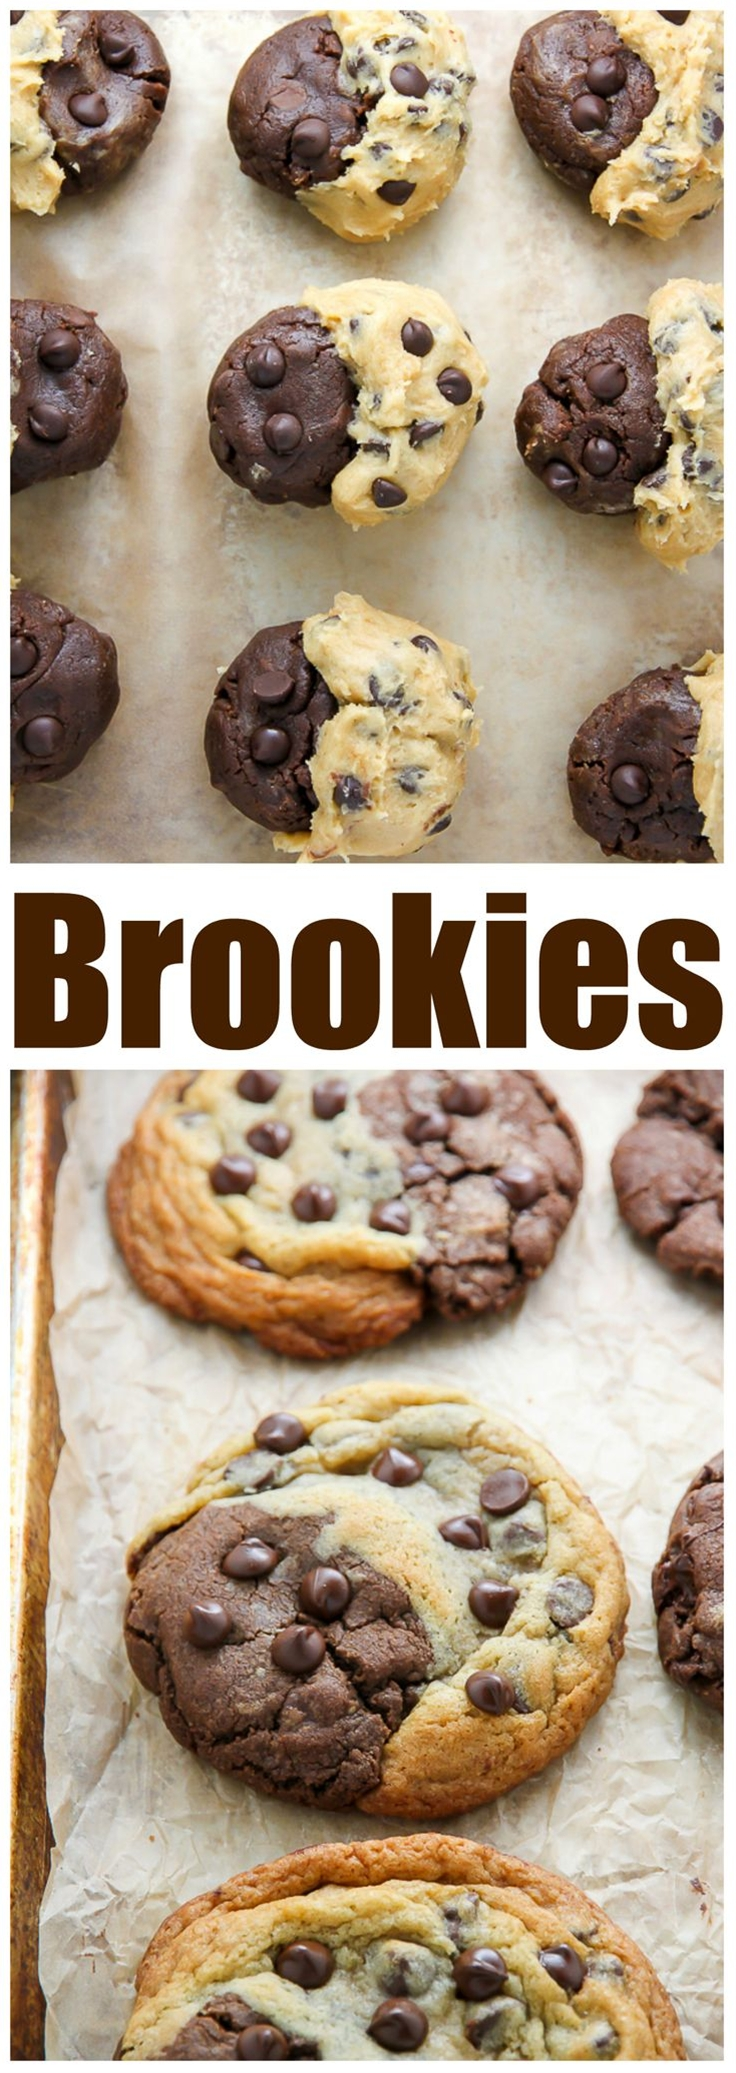 Thick and chewy, these treats are half chocolate chip cookies and half chocolate brownie!!! YUM.